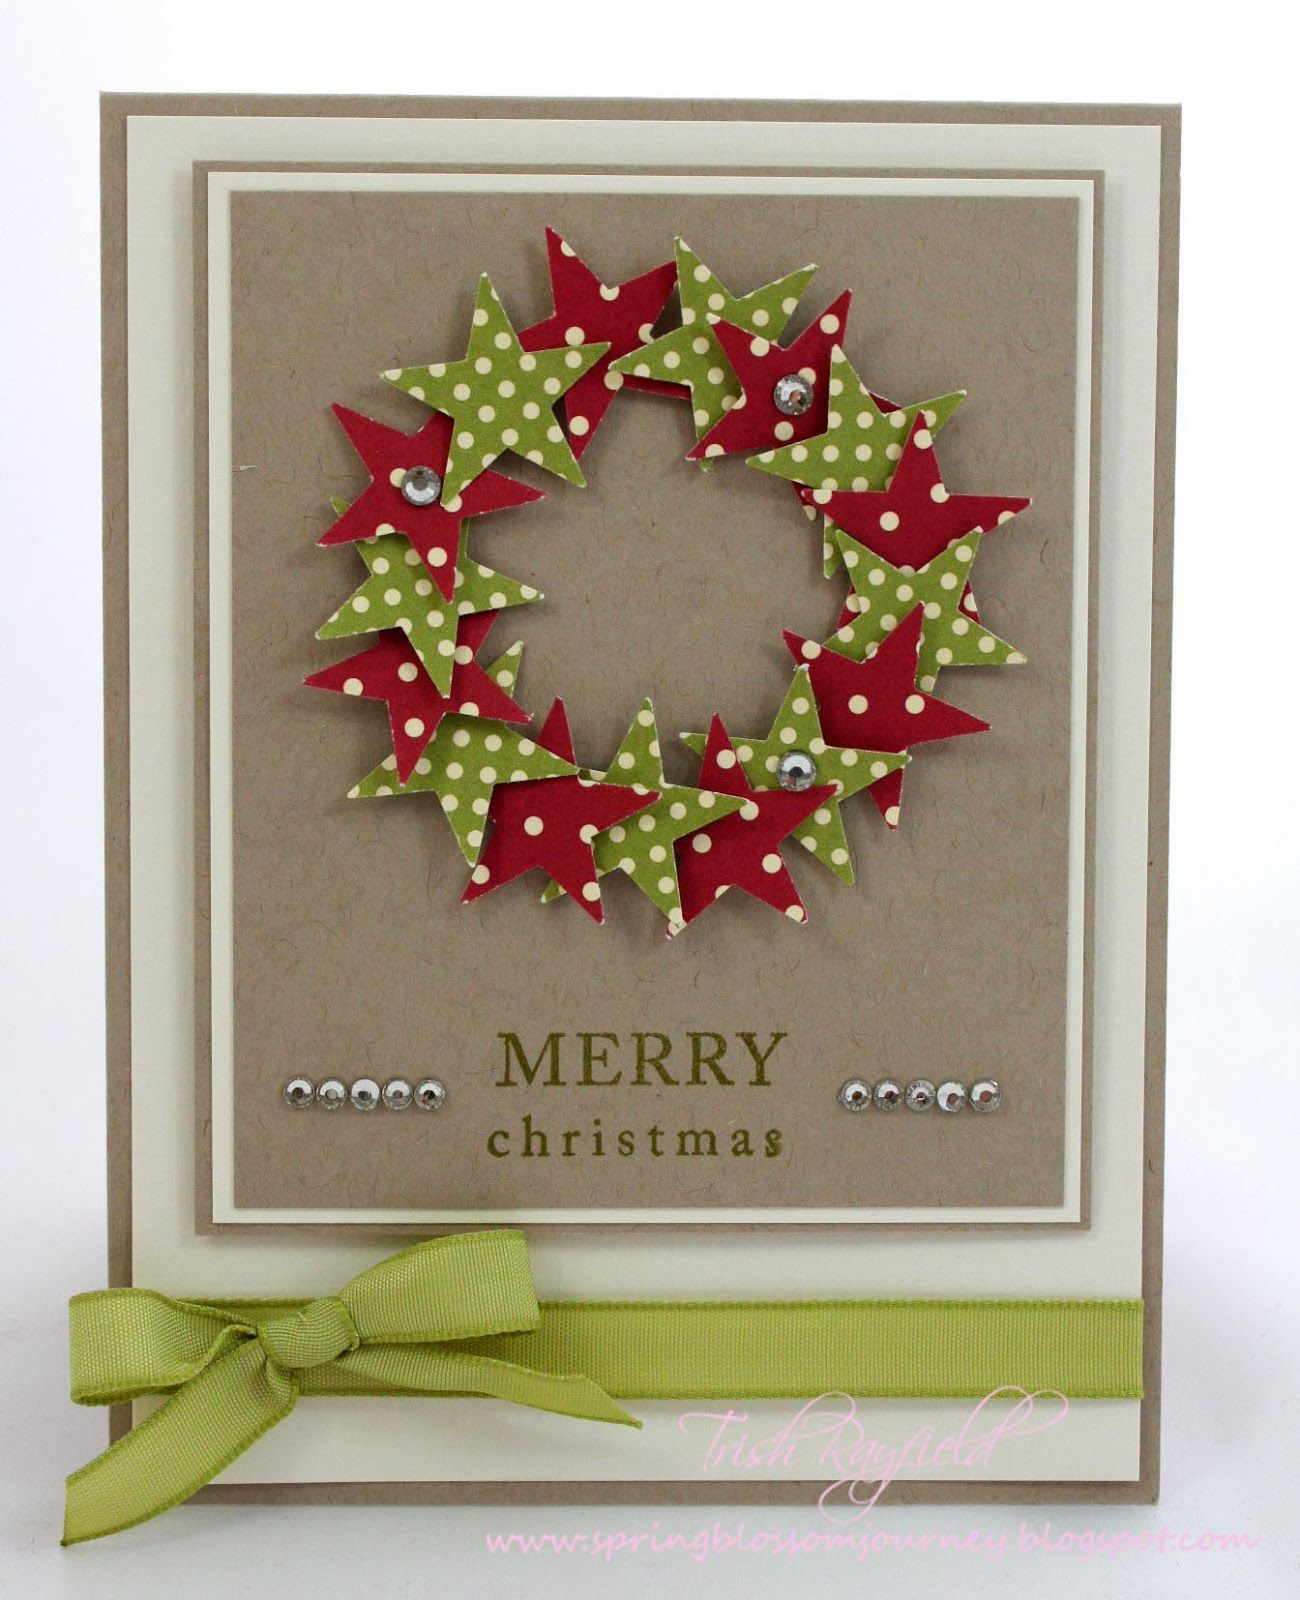 Wreath from old christmas cards - Several Layers Of Cream And Kraft Papers Form The Base For This Handmade Christmas Card